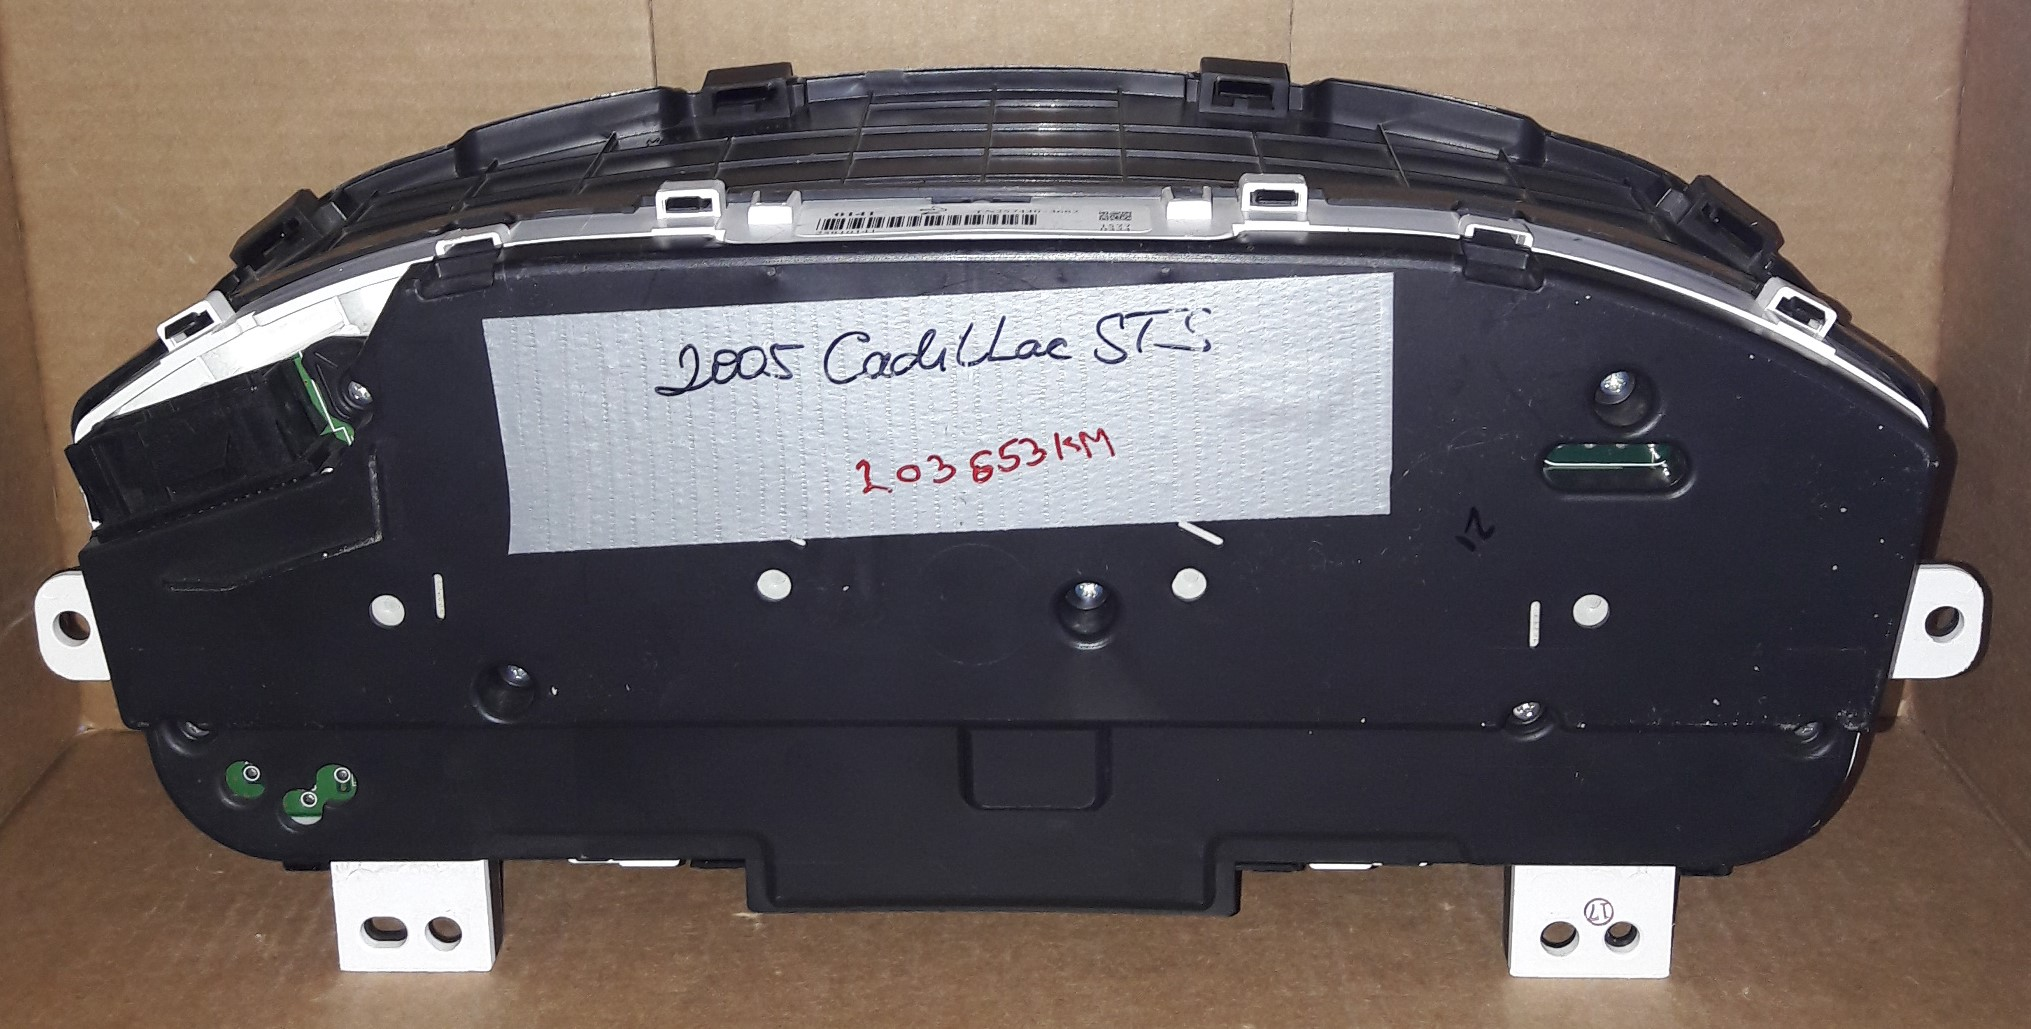 2005 CADILLAC STS USED DASHBOARD INSTRUMENT CLUSTER FOR SALE (KM/H)